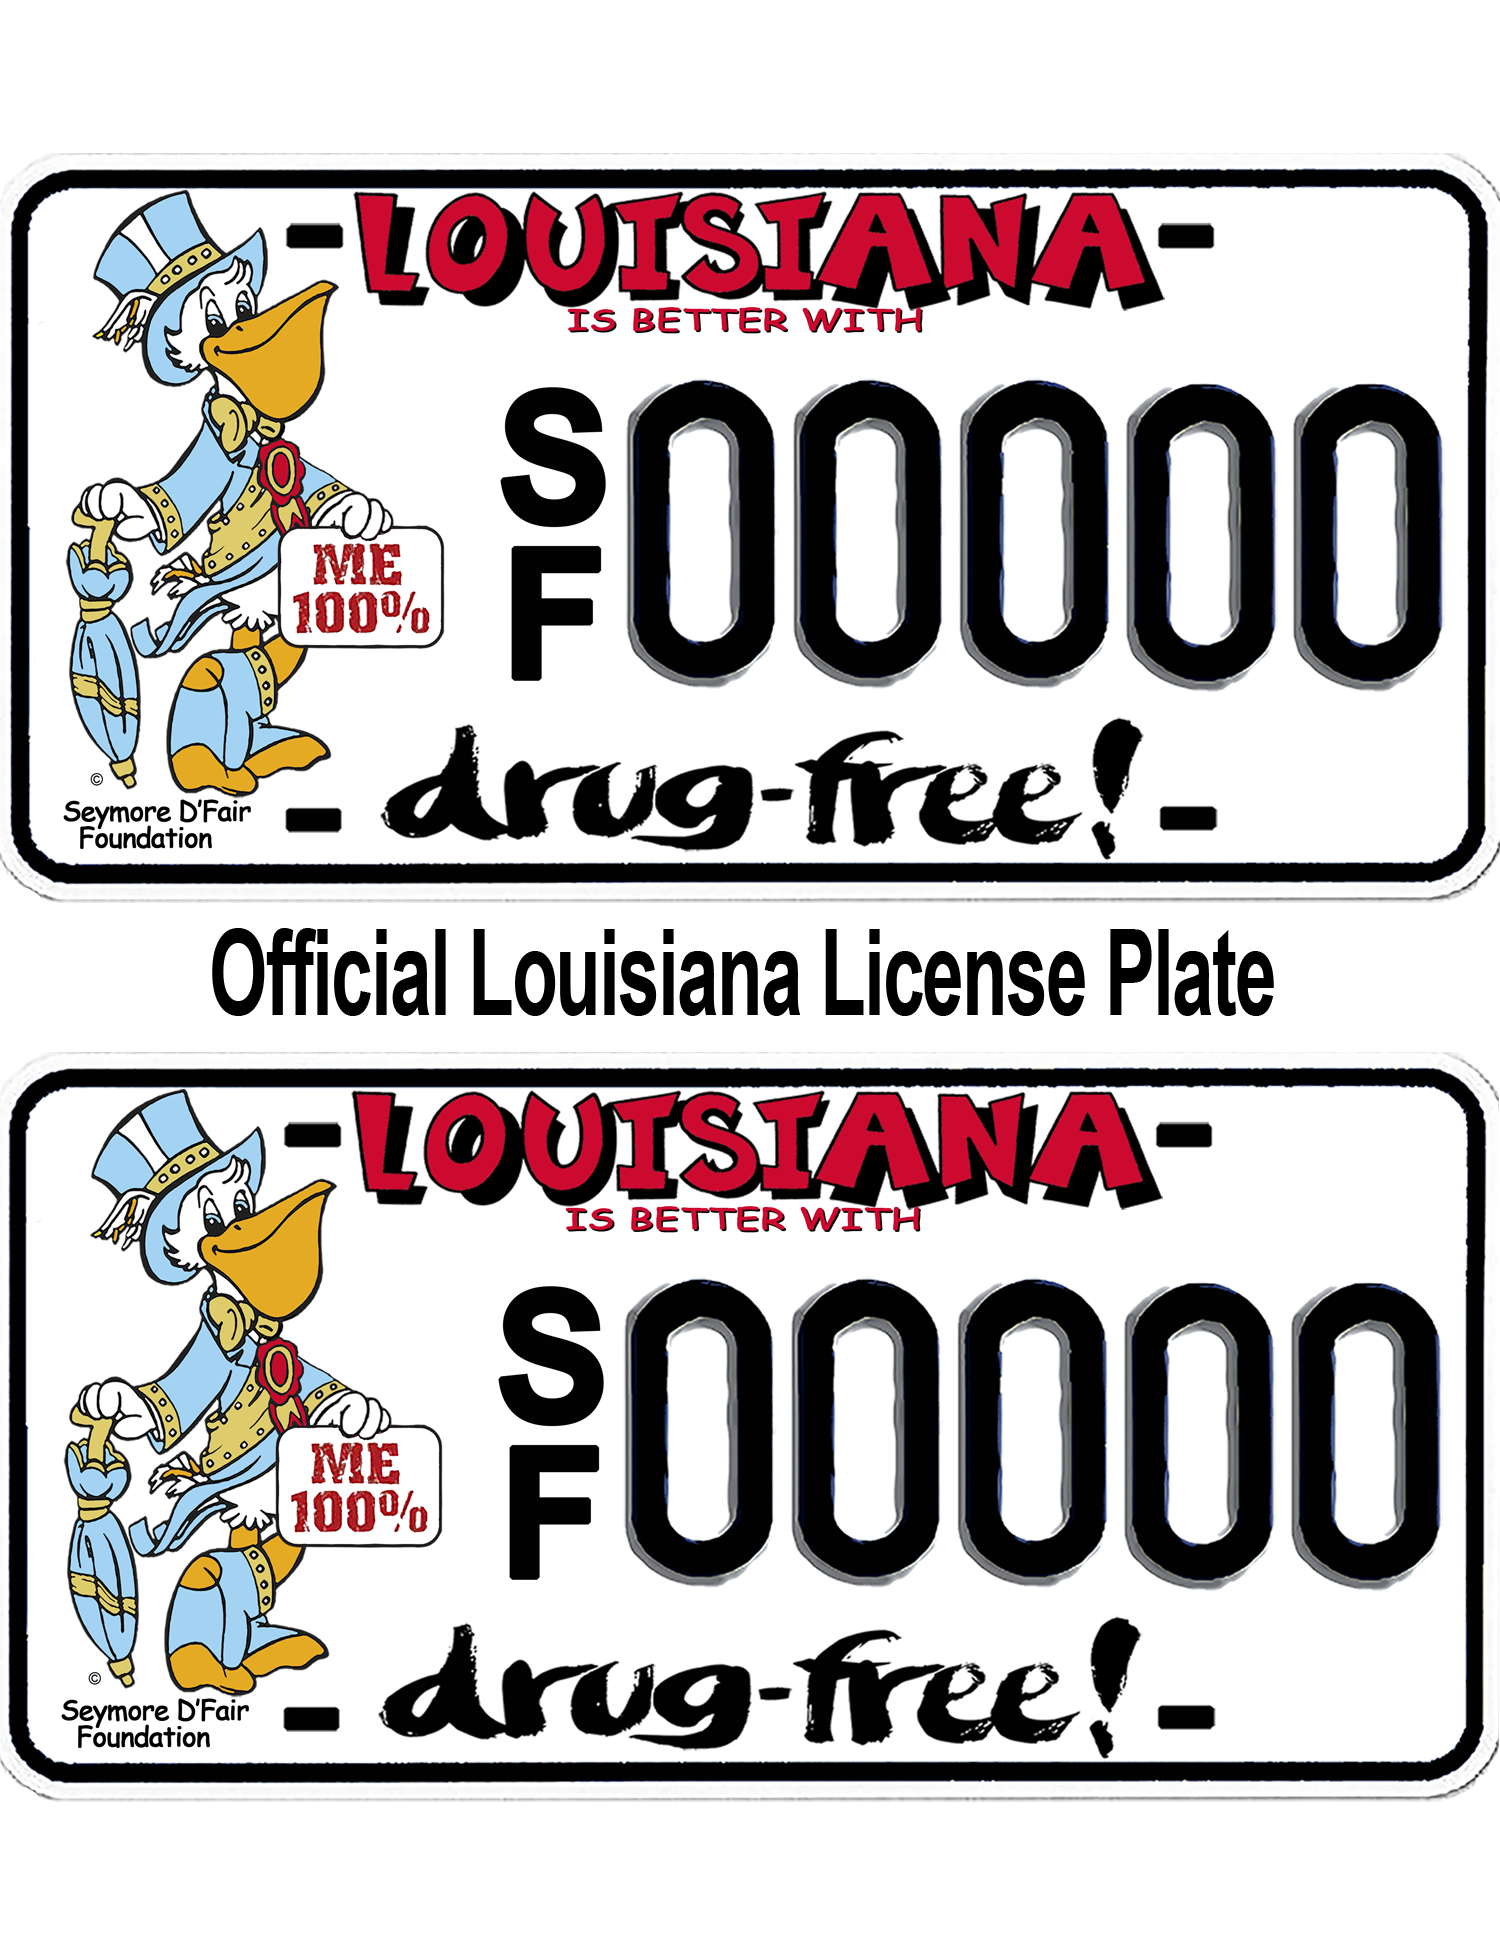 080519 - Seymore License Plate - Working Design_with Ribbon_Double.png